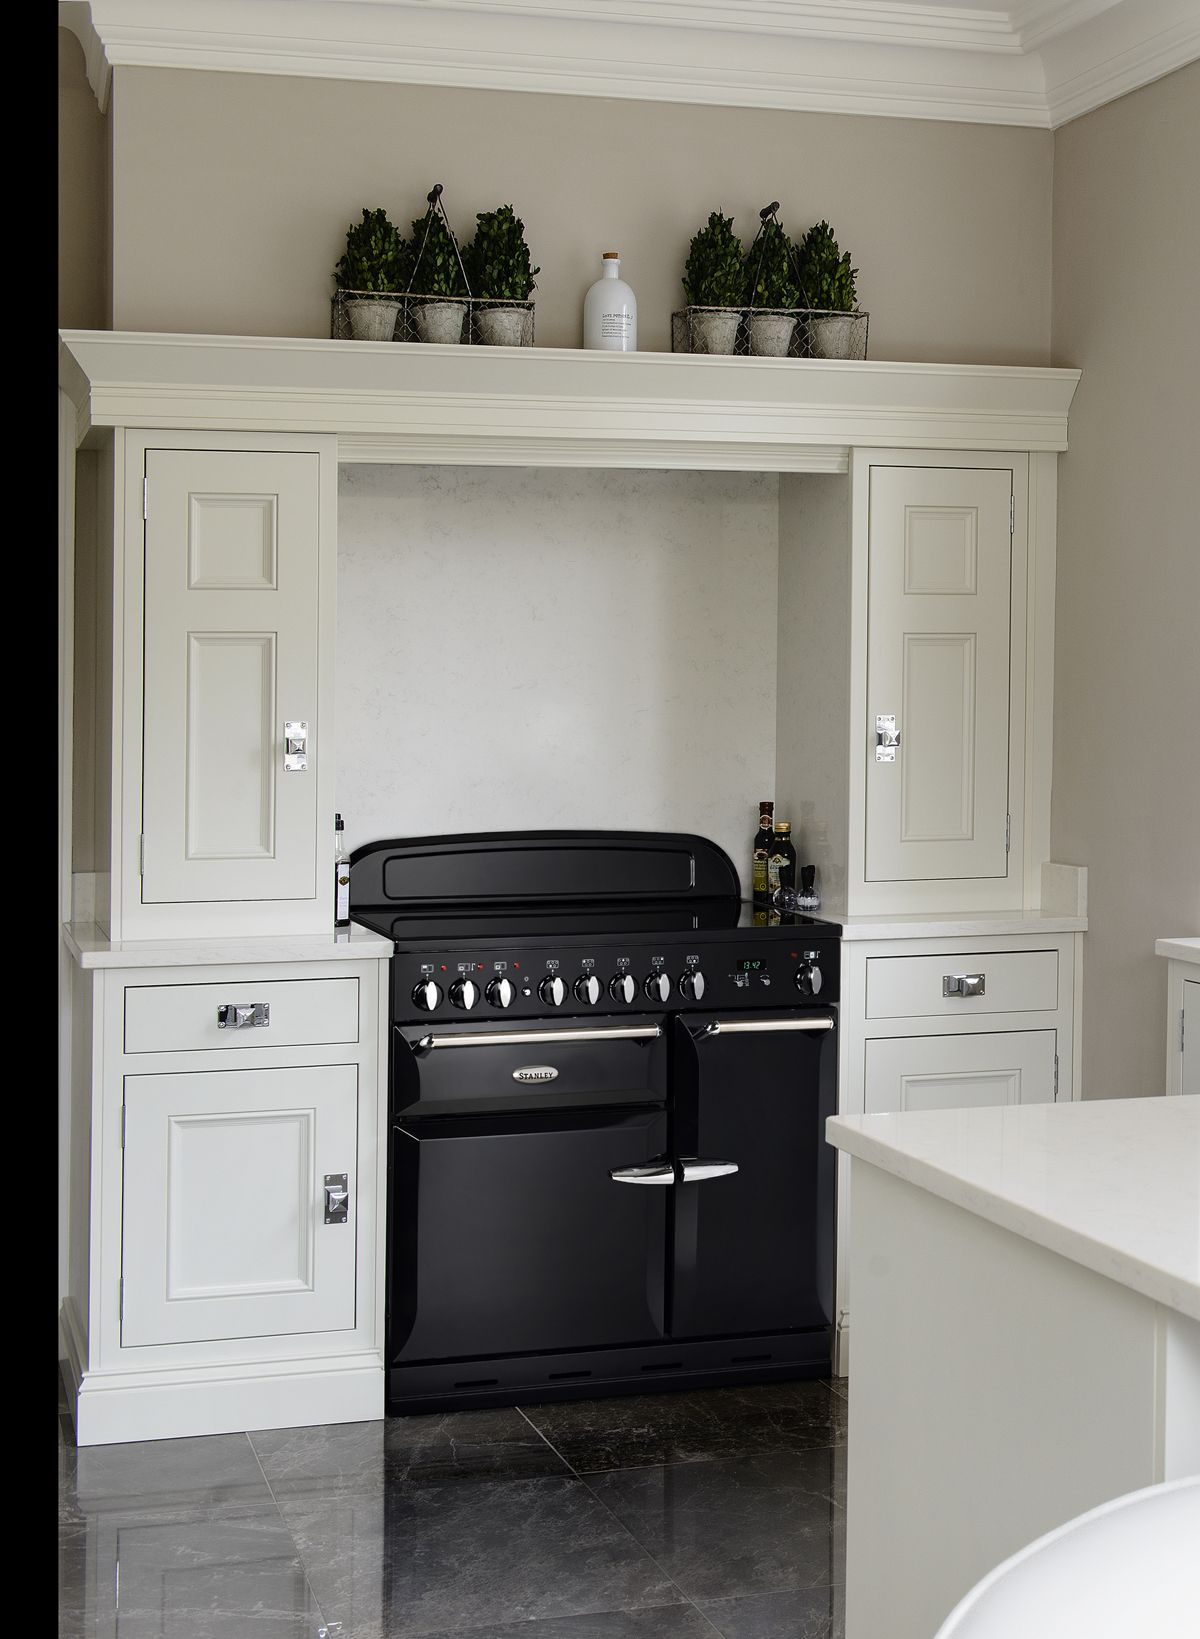 The Supreme Deluxe Range Cooker Displays Timeless Design Quality That  Enables It To Fit In To Any Style Of Kitchen.